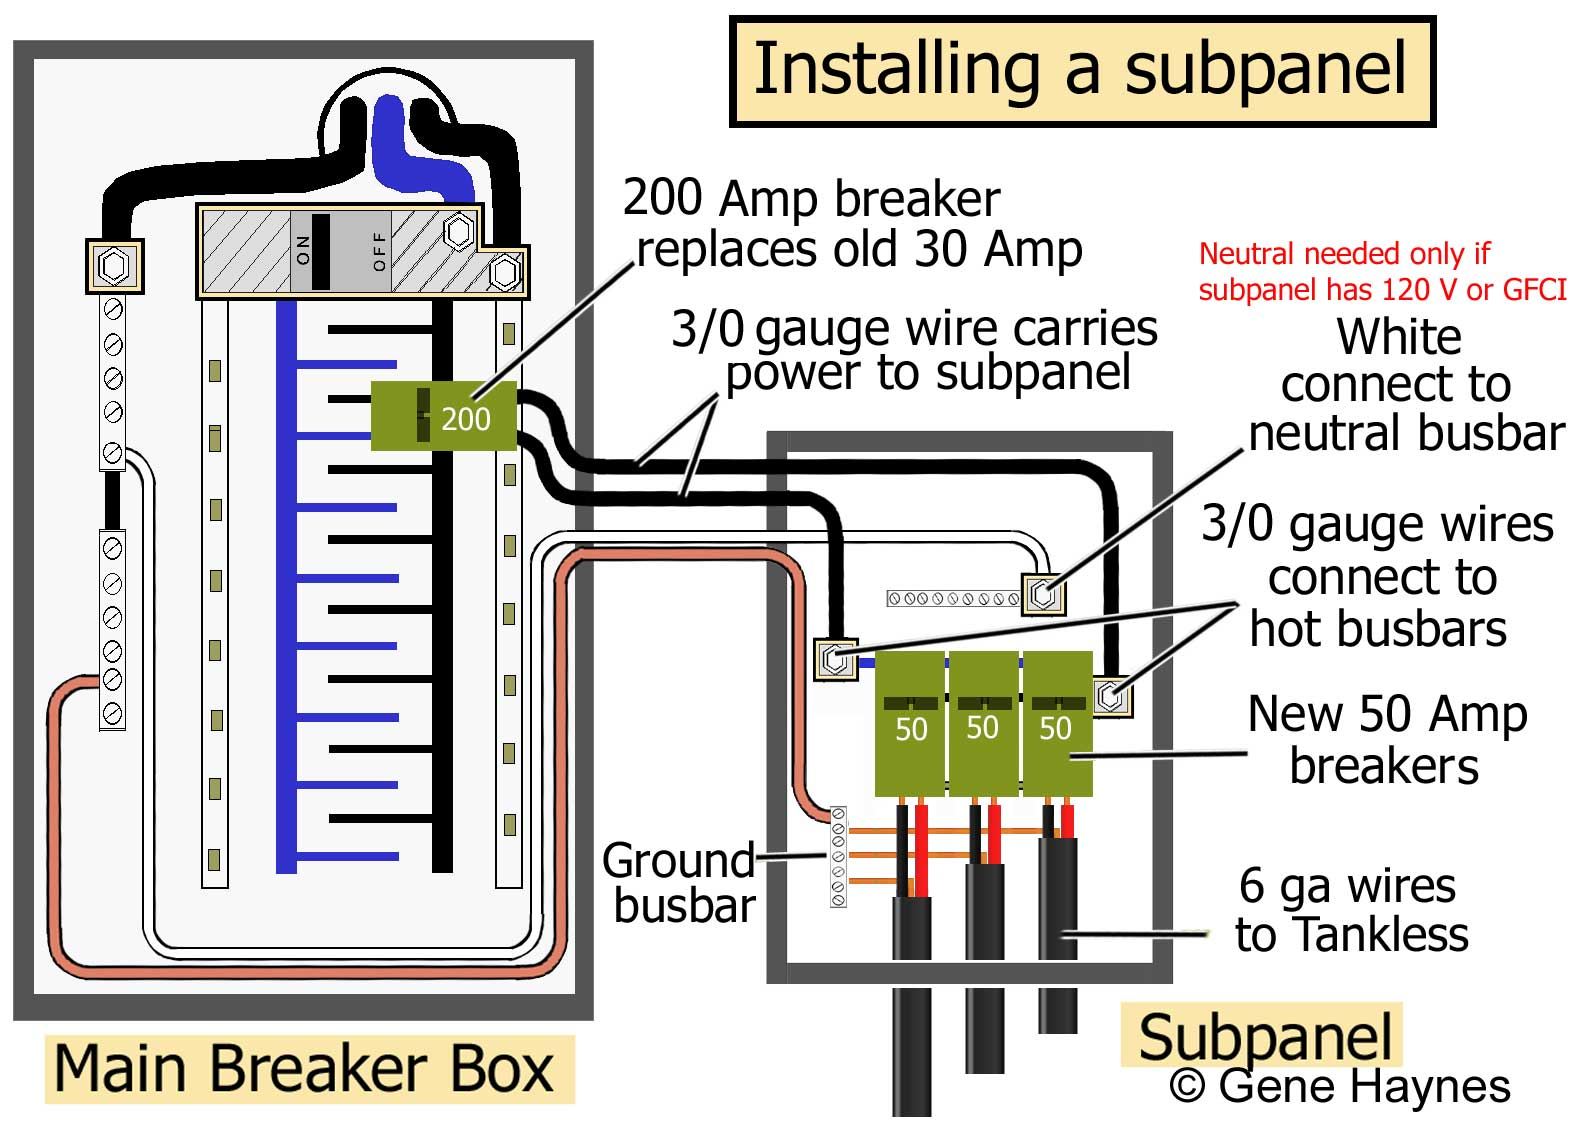 How to install a subpanel how to install main lug 150 amp breaker uses 20 wire neutral wire needed only if subpanel has 120volt breakers or gfci ground wire required for all installations if panel will greentooth Choice Image